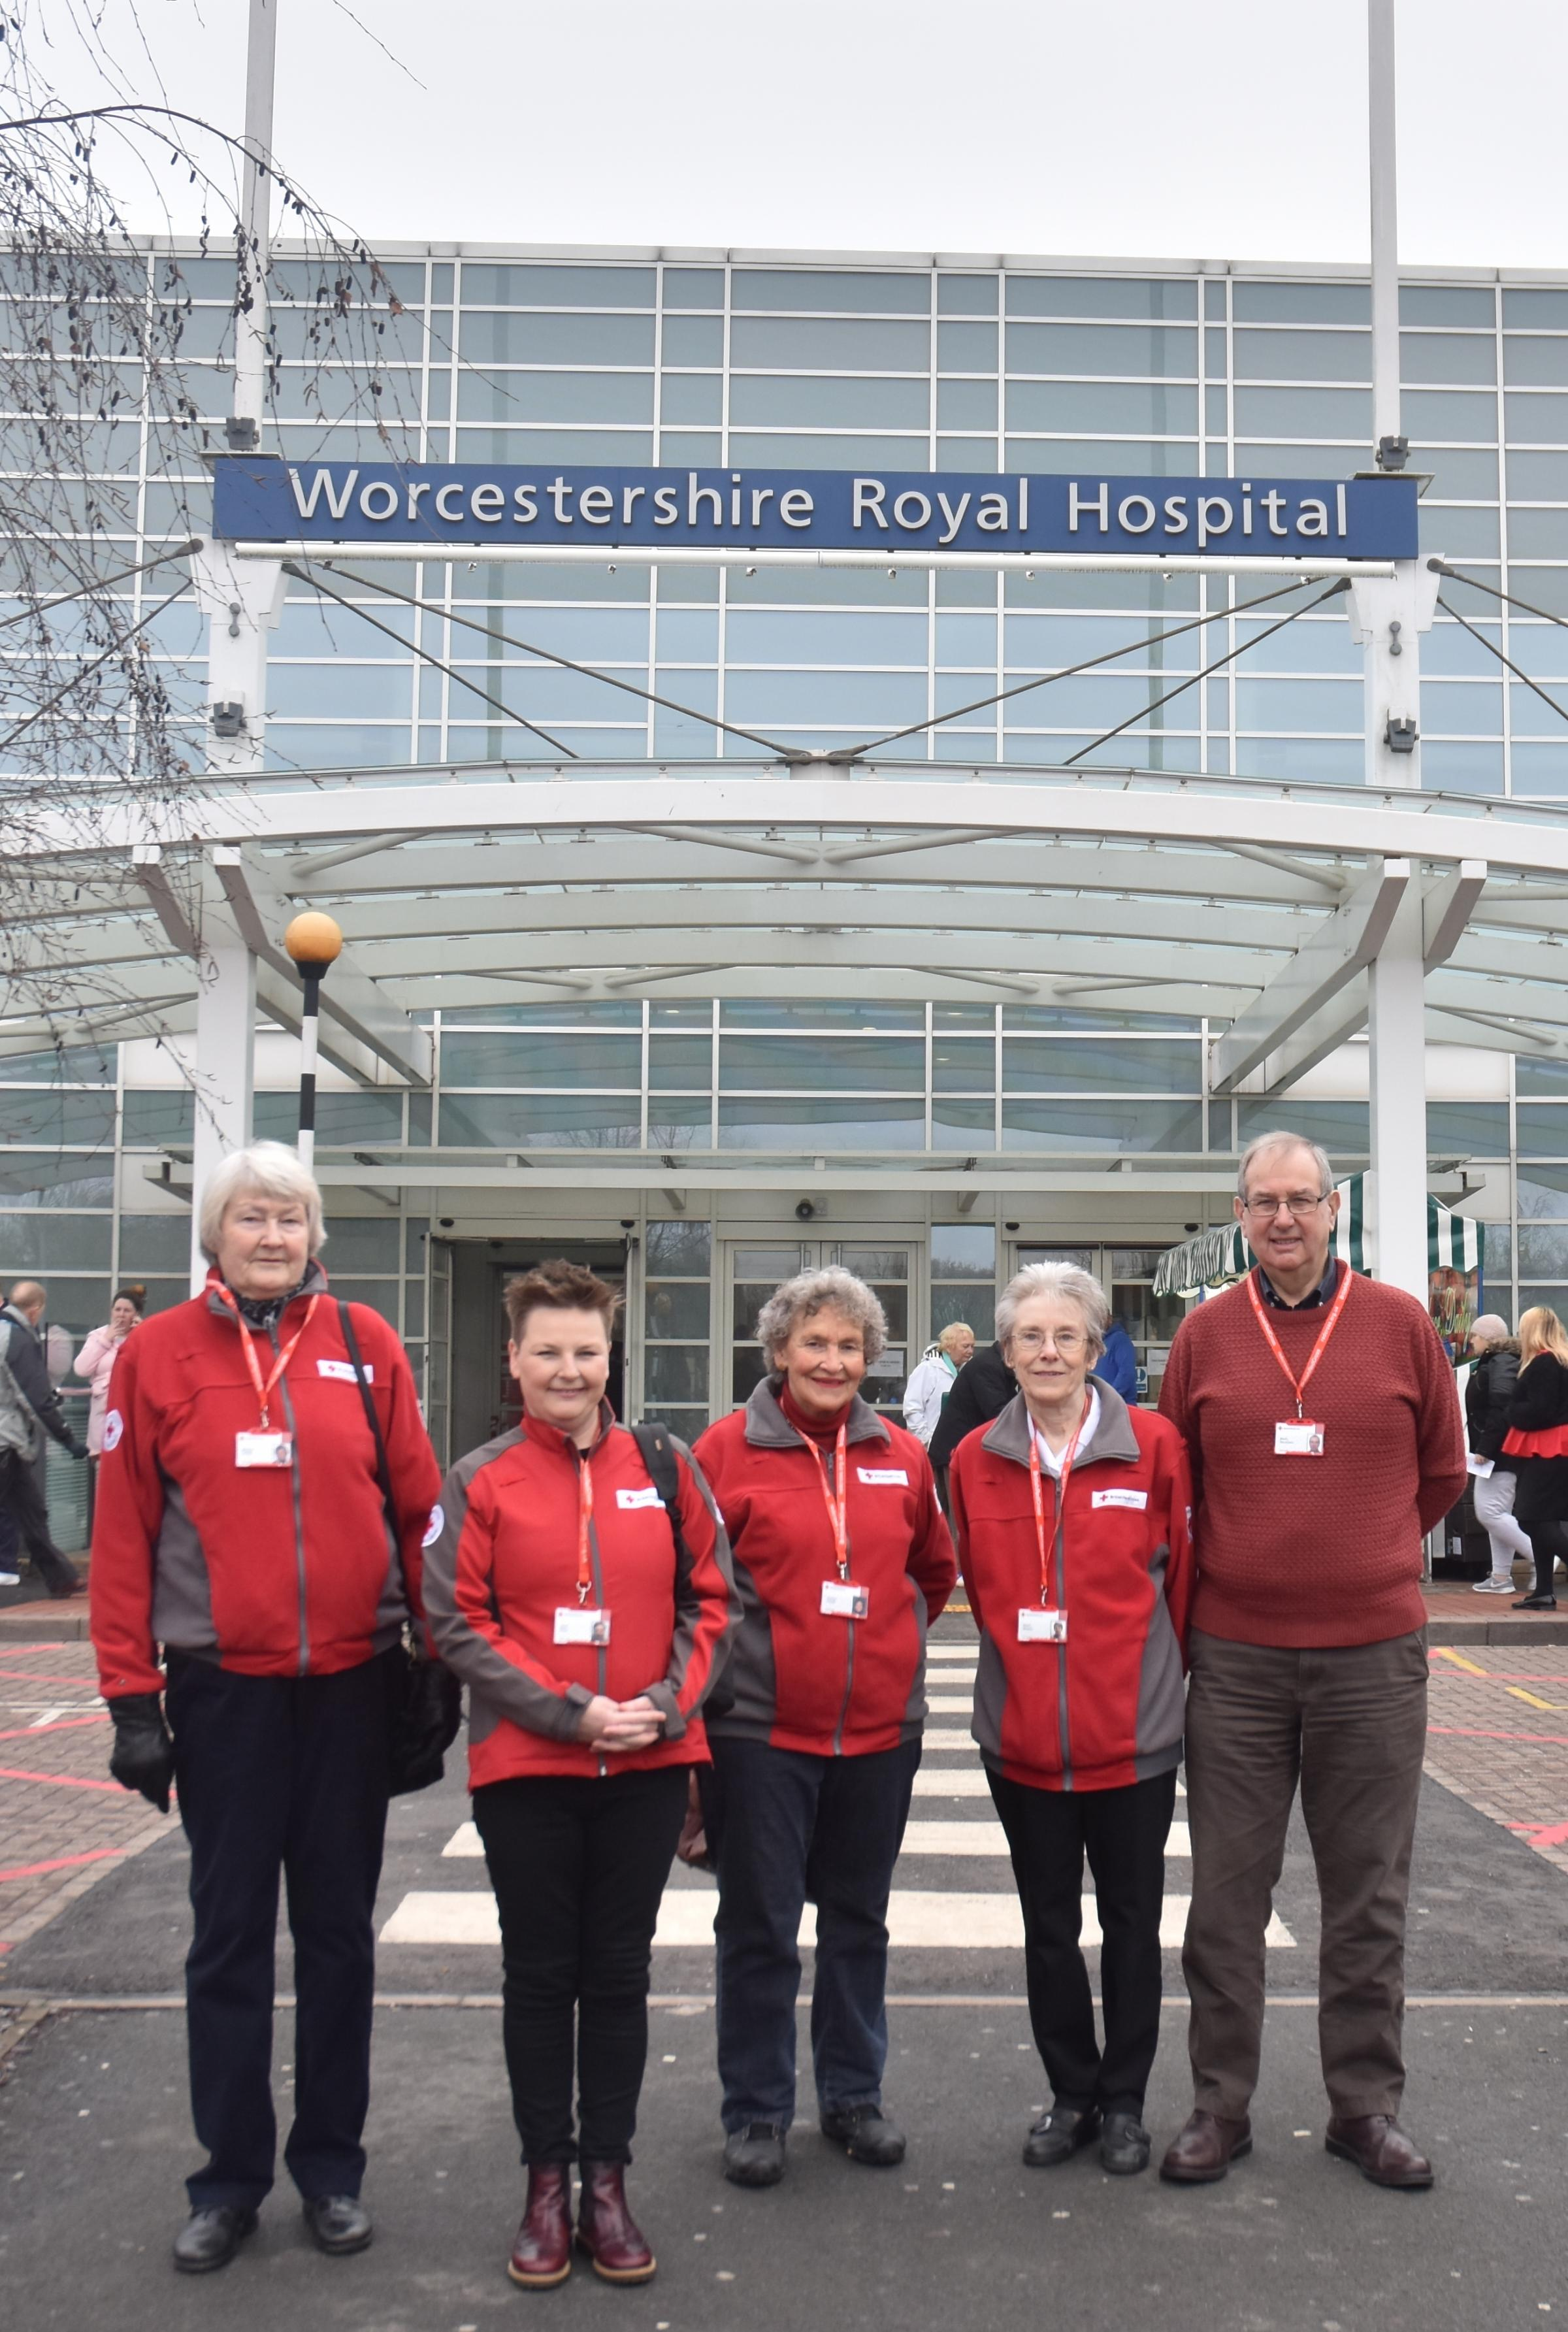 HEROES: (From left) Margret Tufnell (volunteer), Clare King (operations manager Red Cross Central England), Veronica Collette (volunteer), Eileen Watson (volunteer), Martin Stevenson (volunteer).